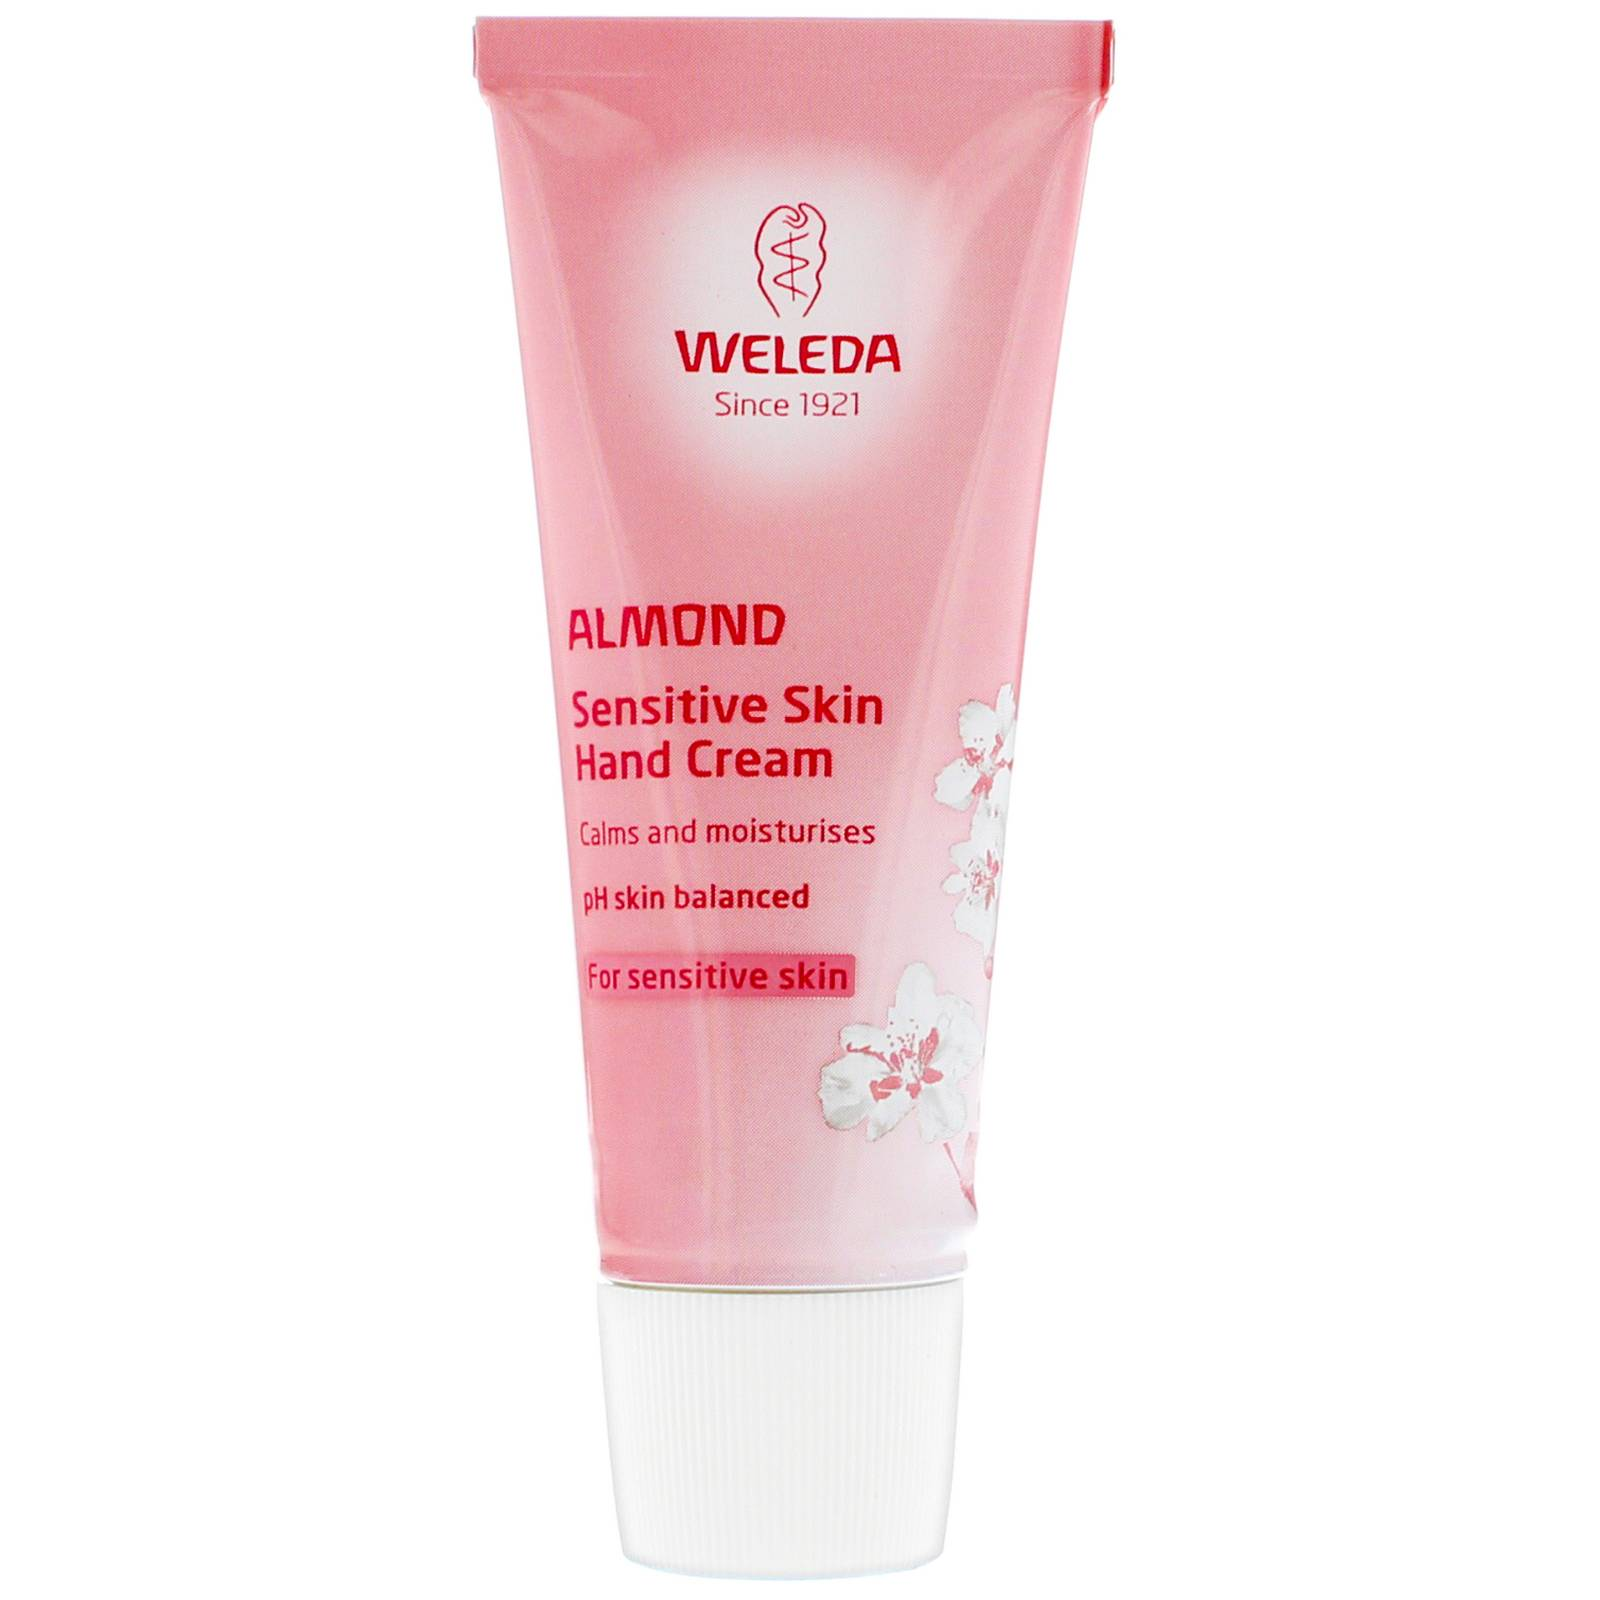 Weleda Body Care Crema mano pelle sensibile alle mandorle 50ml